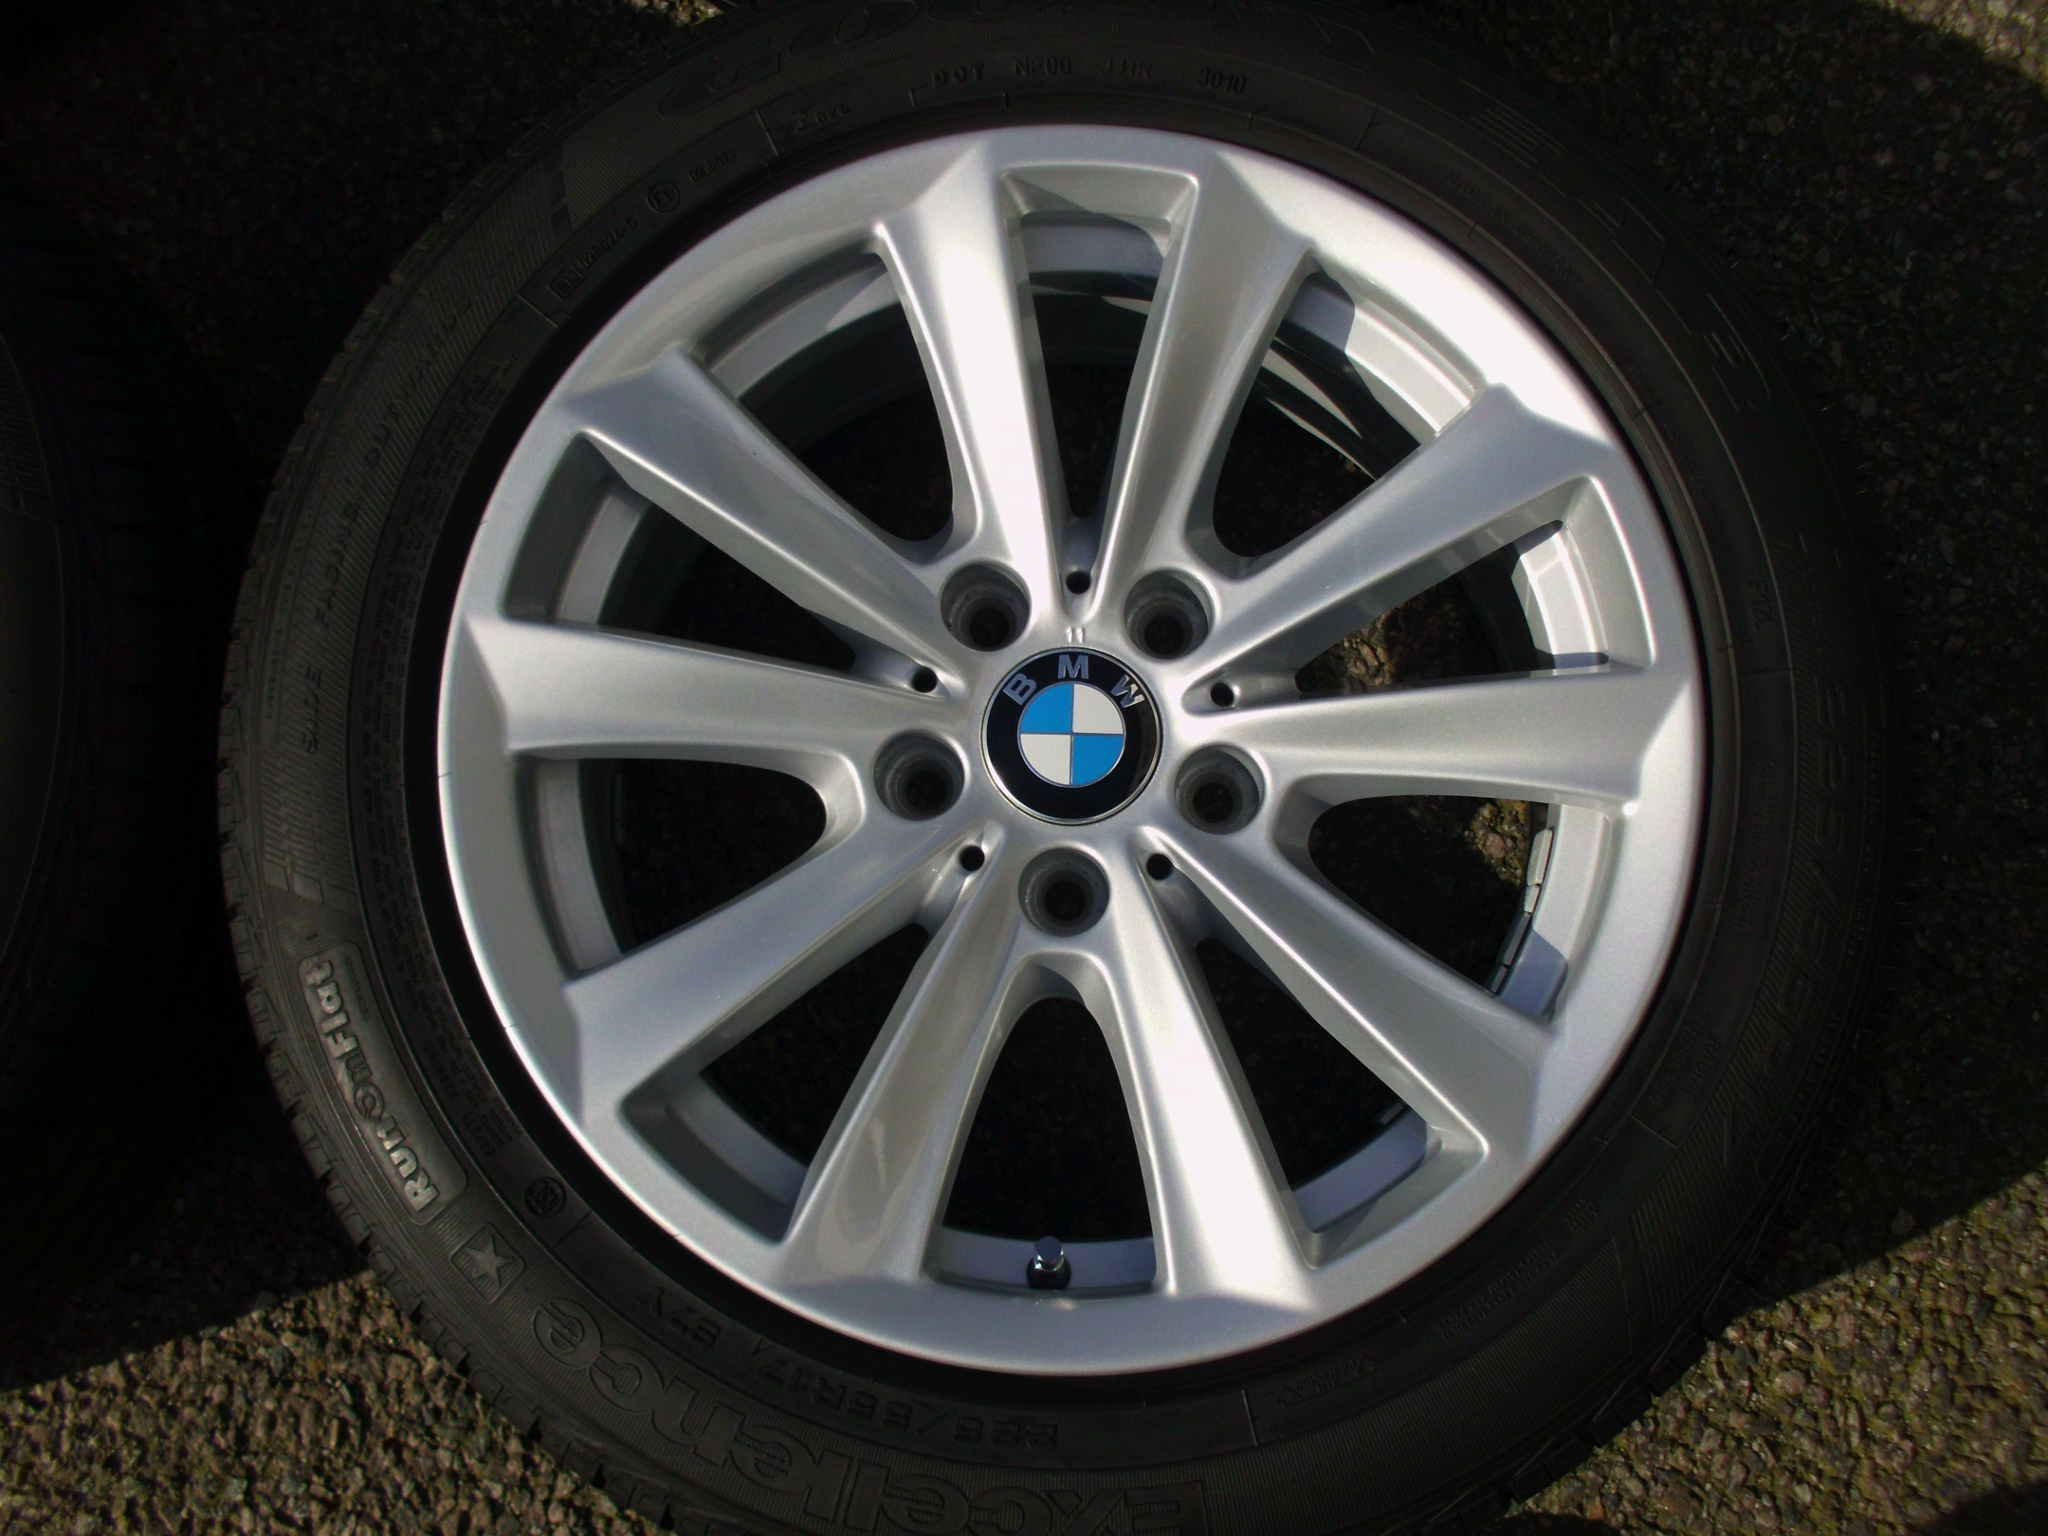 "USED 17"" GENUINE BMW STYLE 236 V SPOKE ALLOY WHEELS, FULLY REFURBED INC VG GOODYEAR RUNFLAT TYRES"